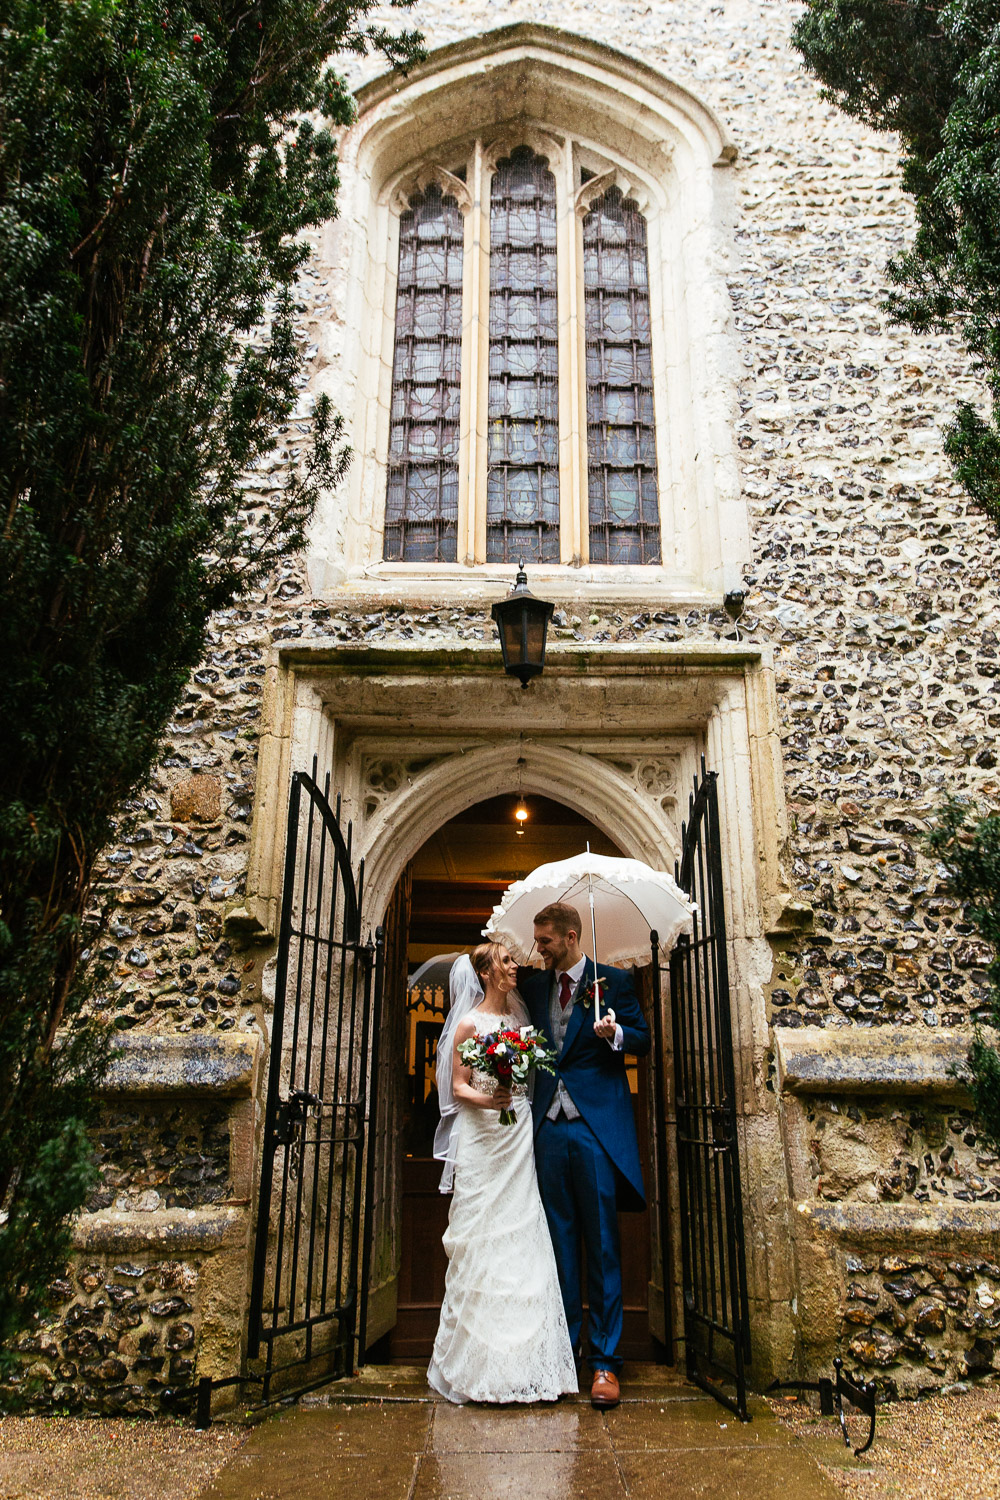 Matthew-and-Hannah-Wedding-Highlights-33.jpg